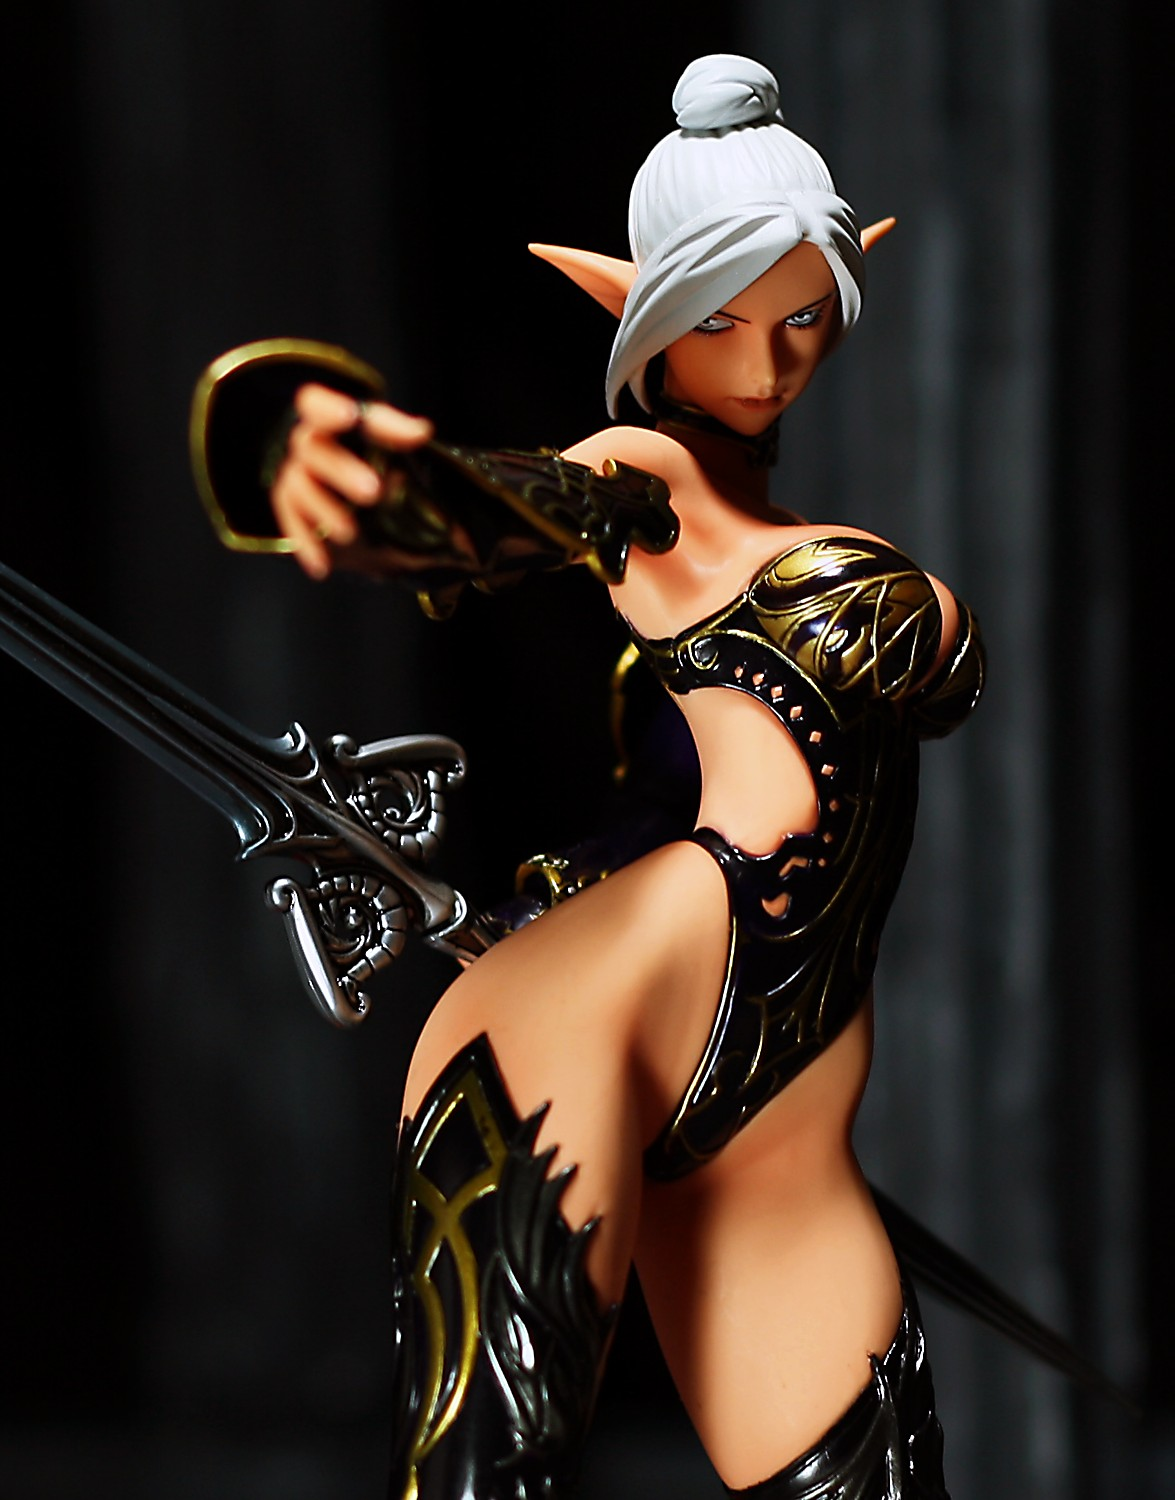 Elf masterbateing erotic picture